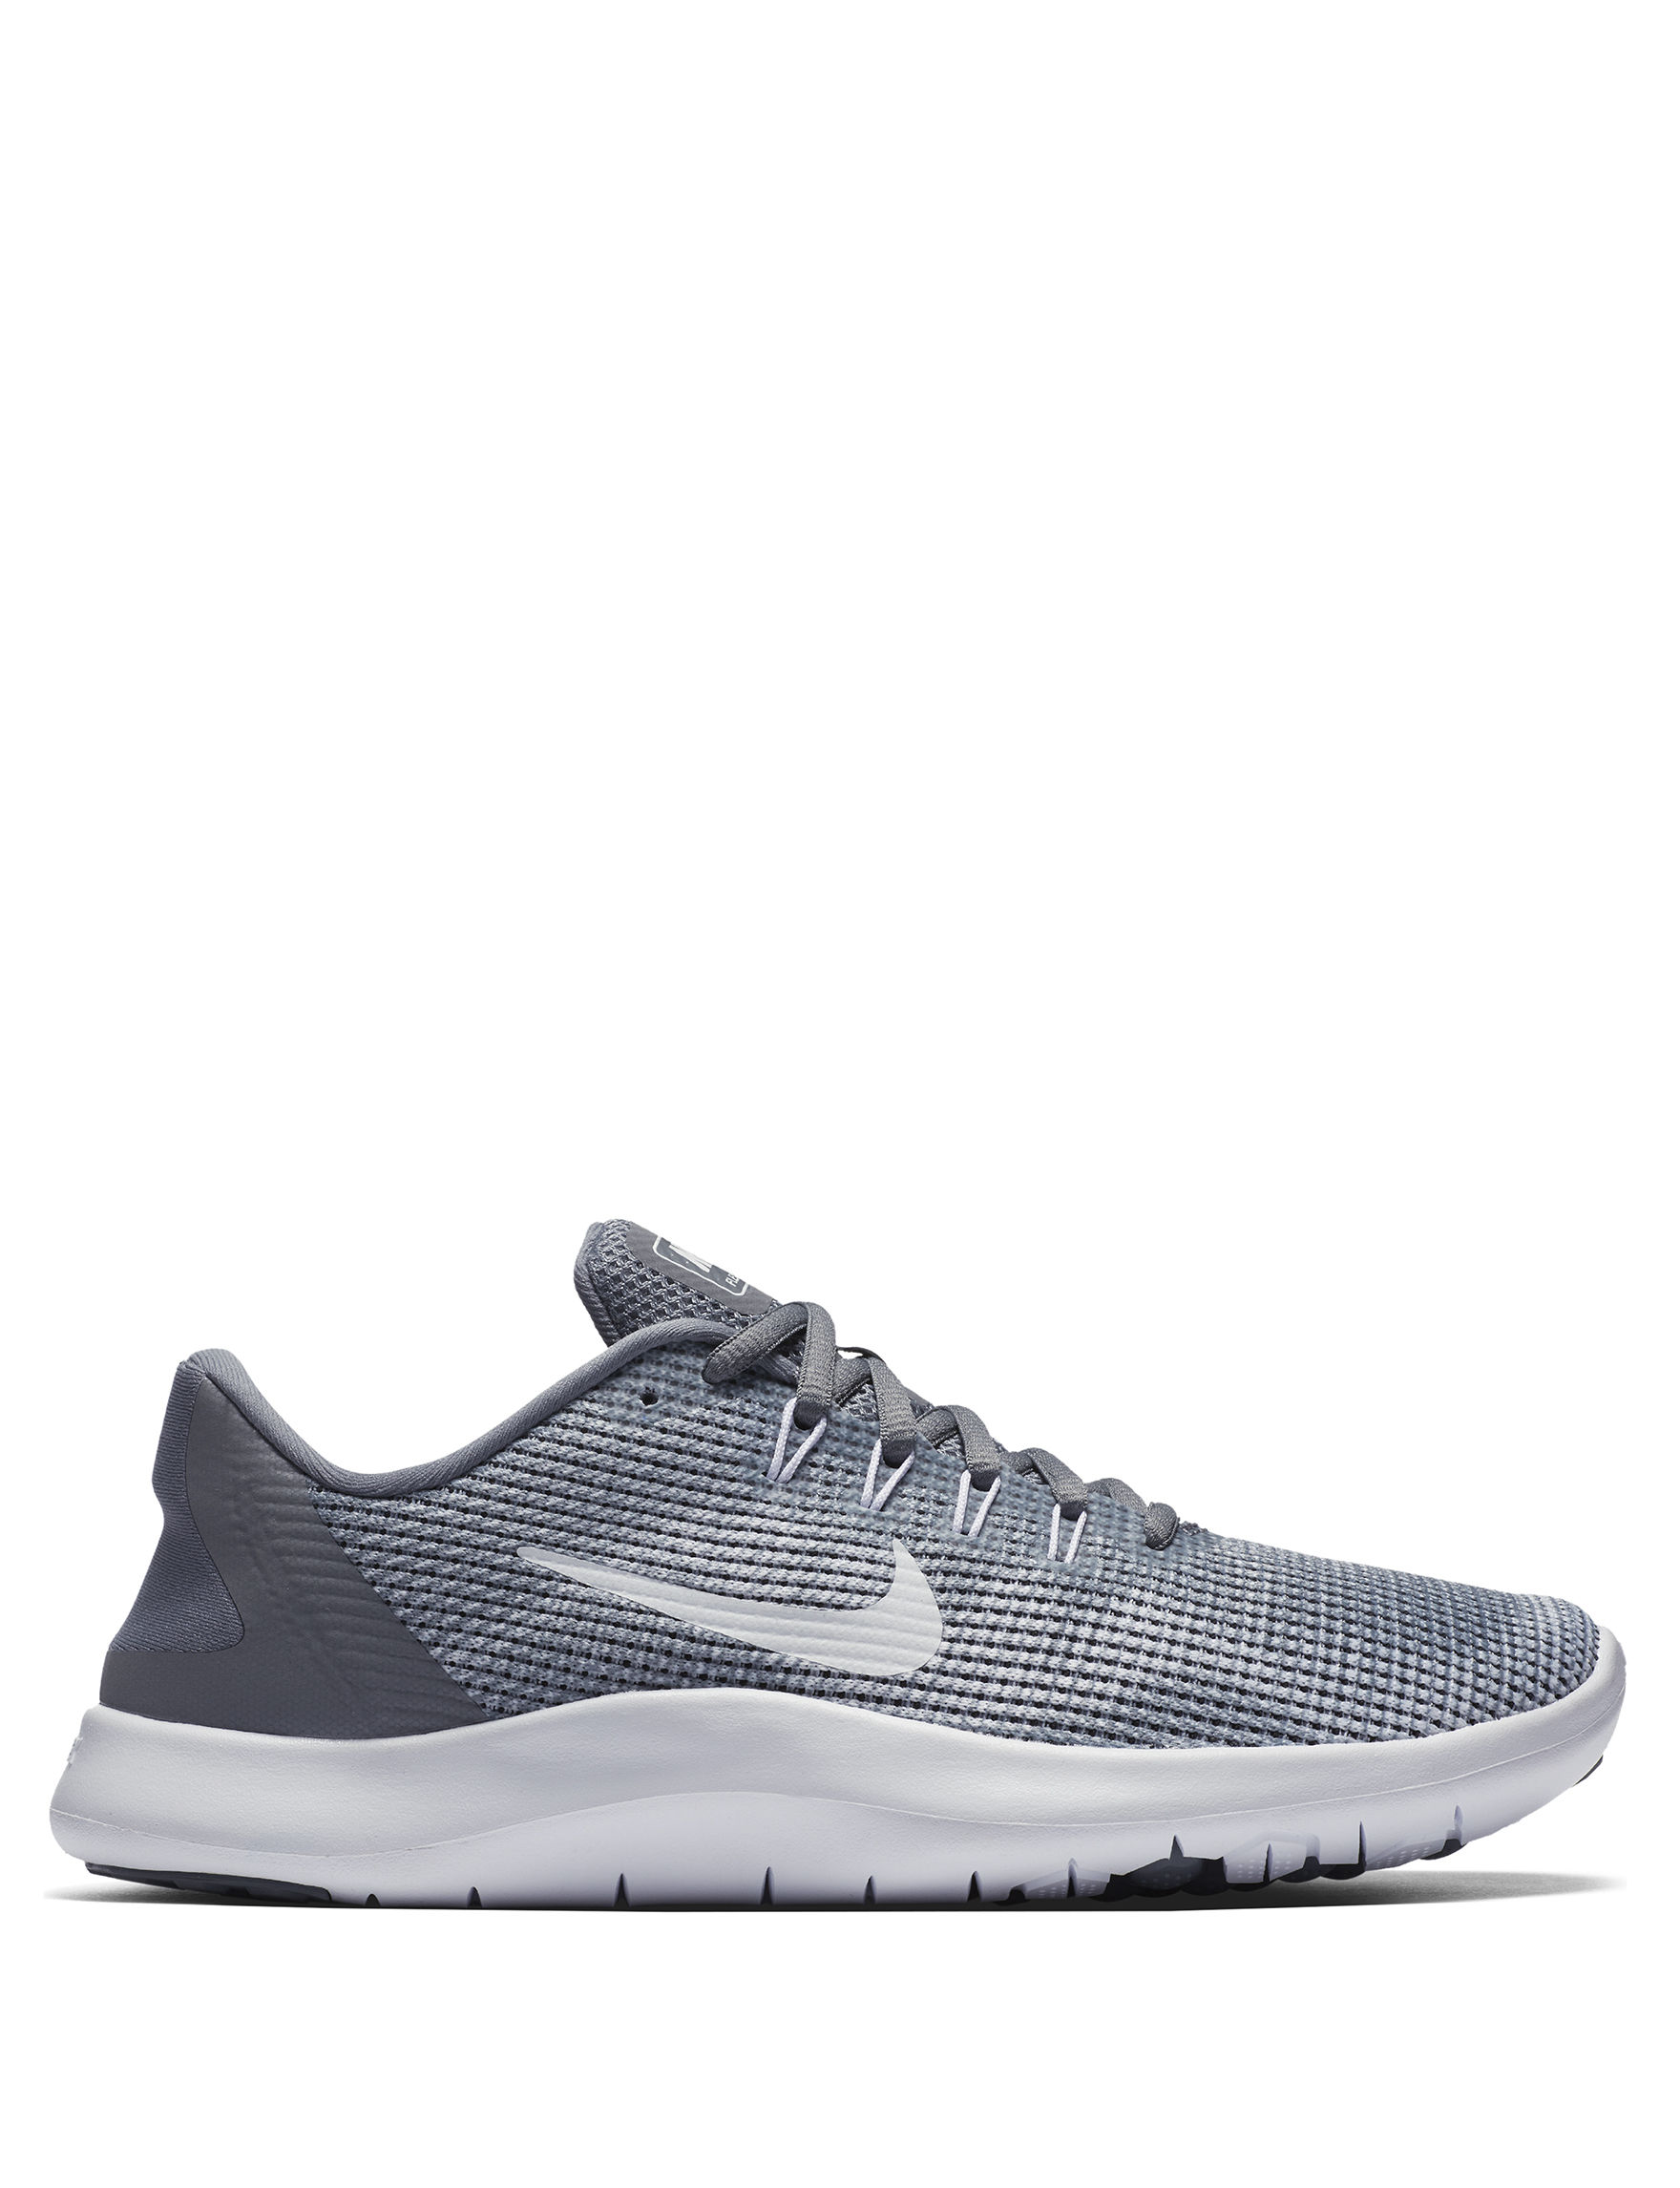 29246a8235c6 Nike Women s Flex RN 2018 Running Shoes - Grey - 7.5 - Nike